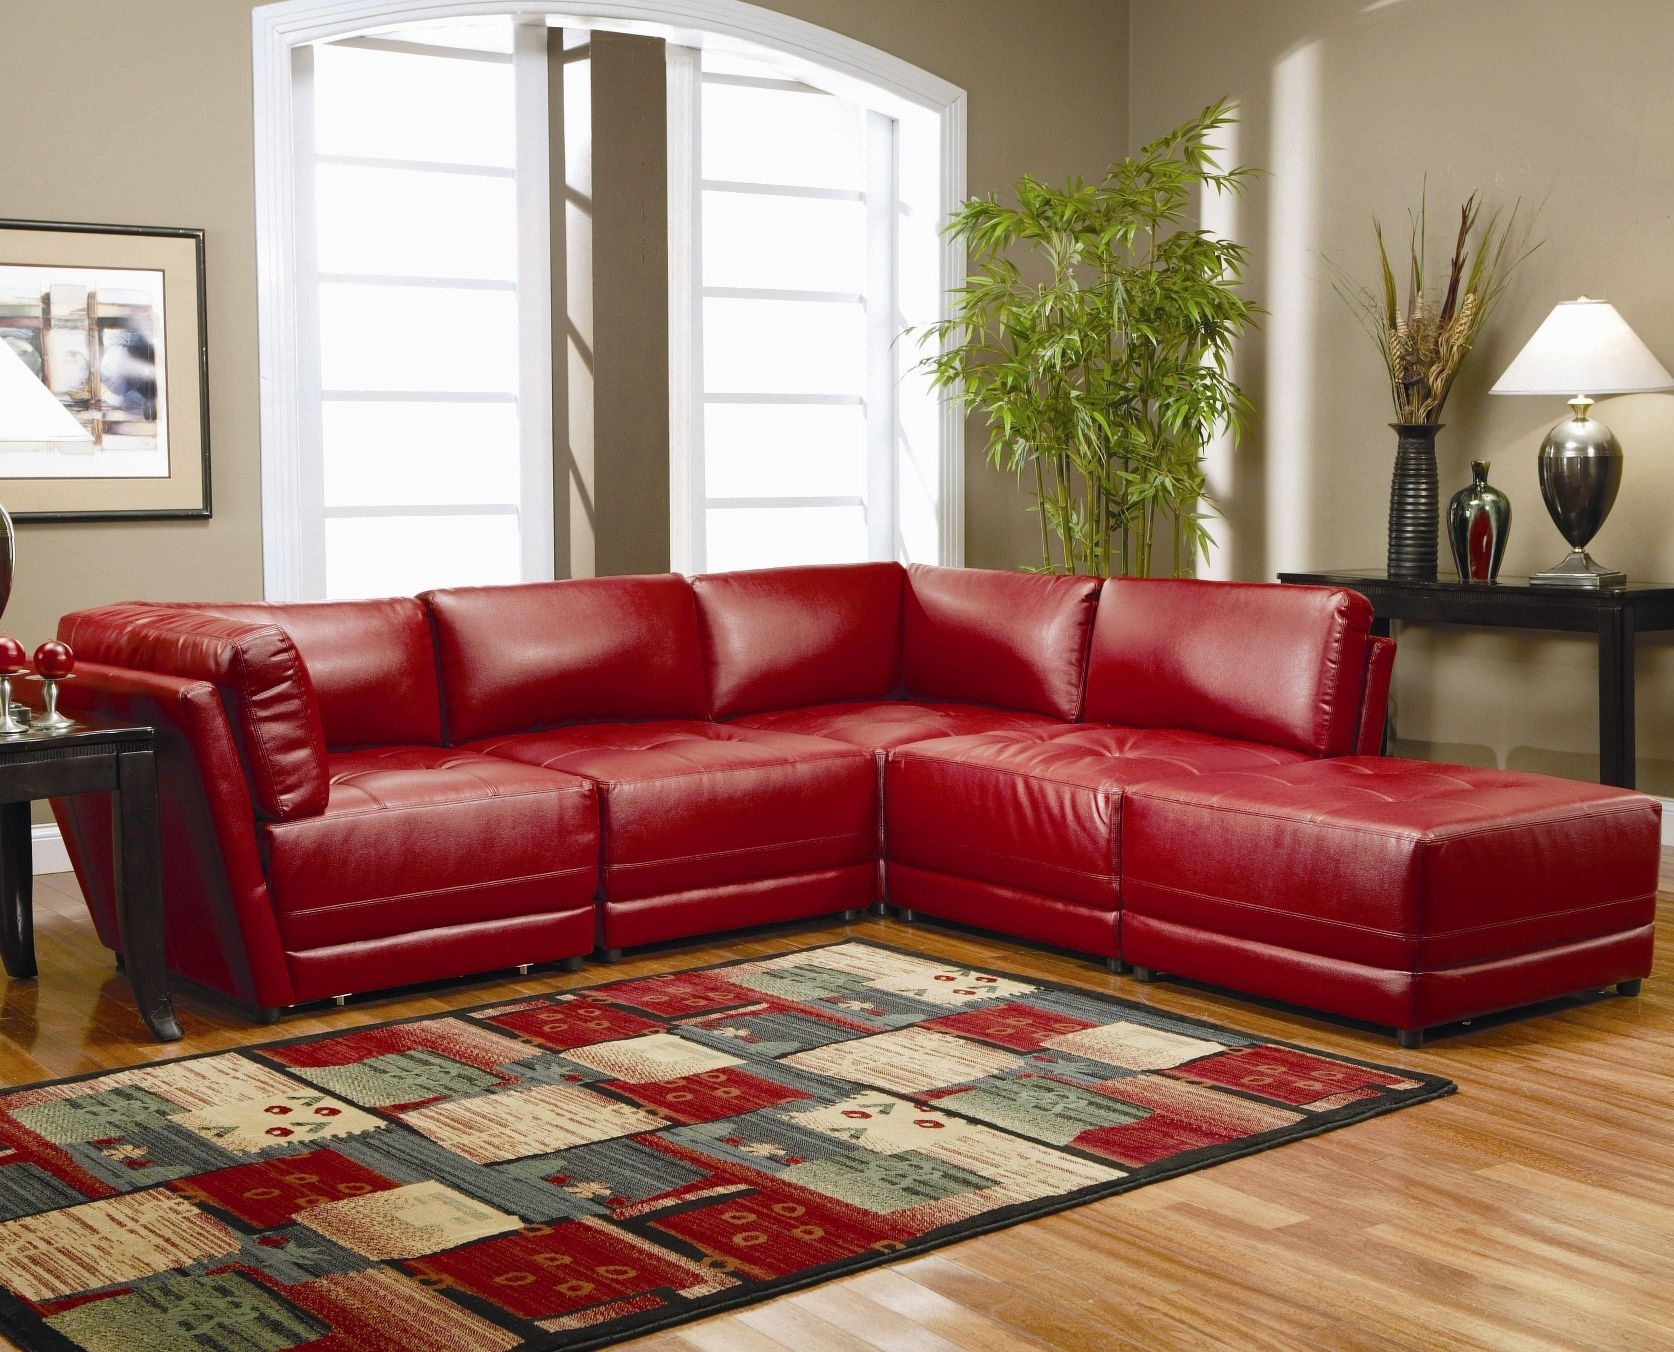 Incredible Sofas Grey Sectional Couch Black Leather Distressed Pic Regarding Red Sectional Sofas (Image 5 of 10)